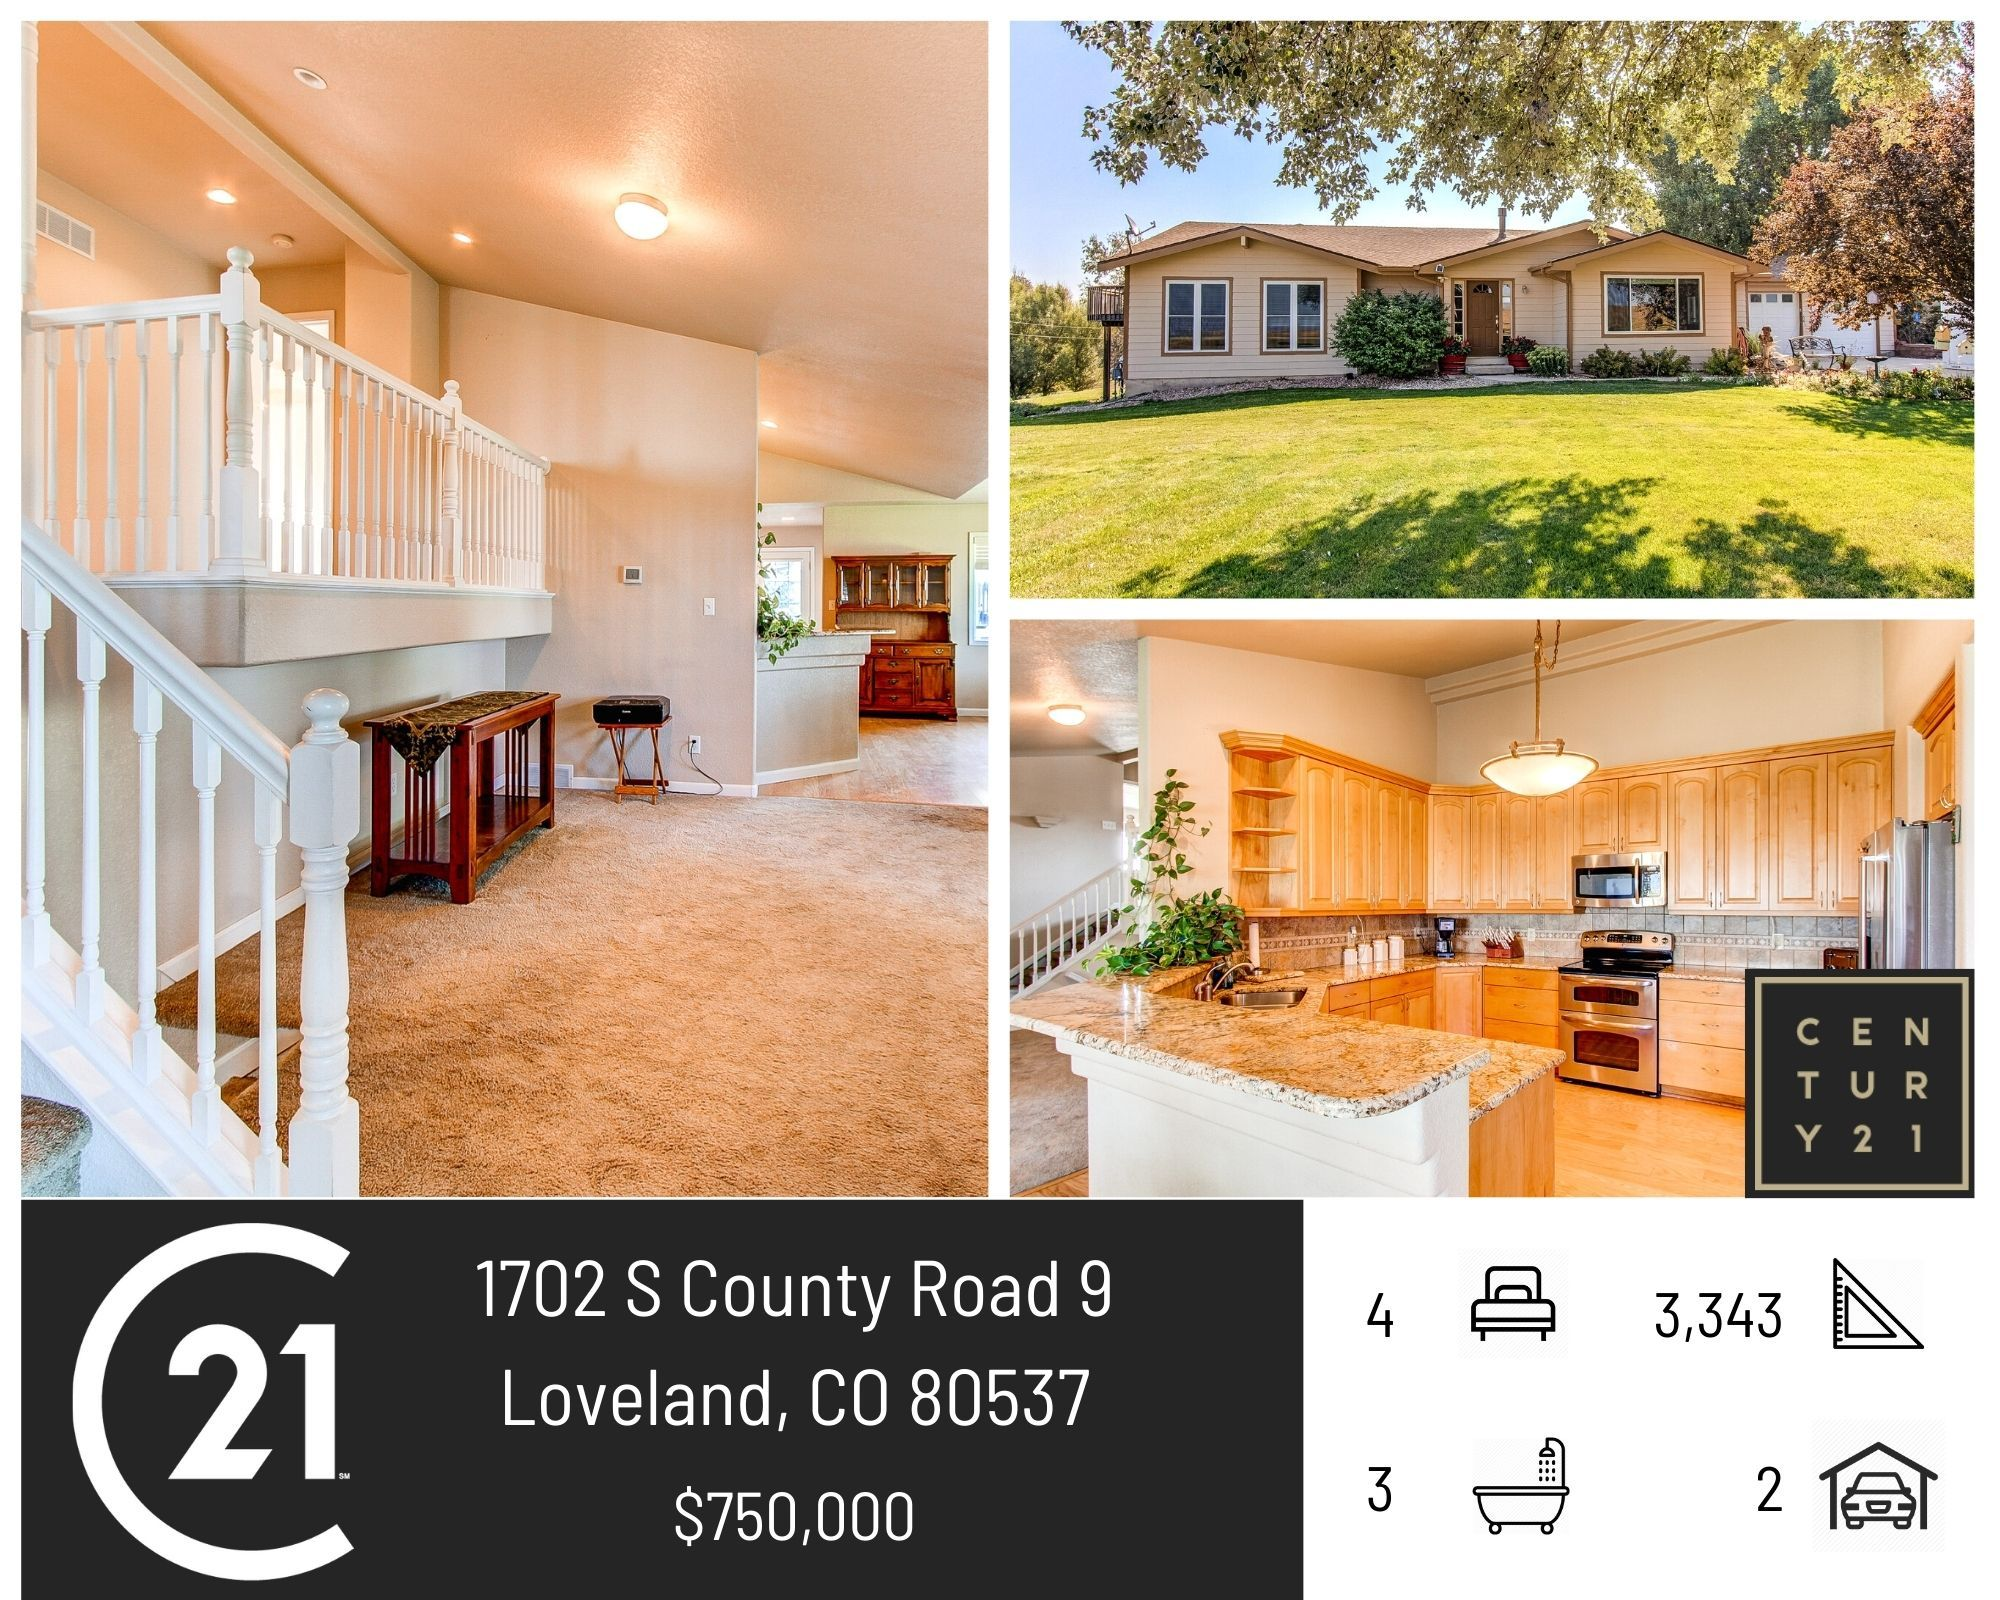 4 bed, 3 bath country home on 2 acres, open floor plan, a walk-out lower level and great views! Call us to set up a showing today! 970.224.1800 #C21Humpal #SellingNoCo #LovelandColorado #JustListed #realestate #horseproperty